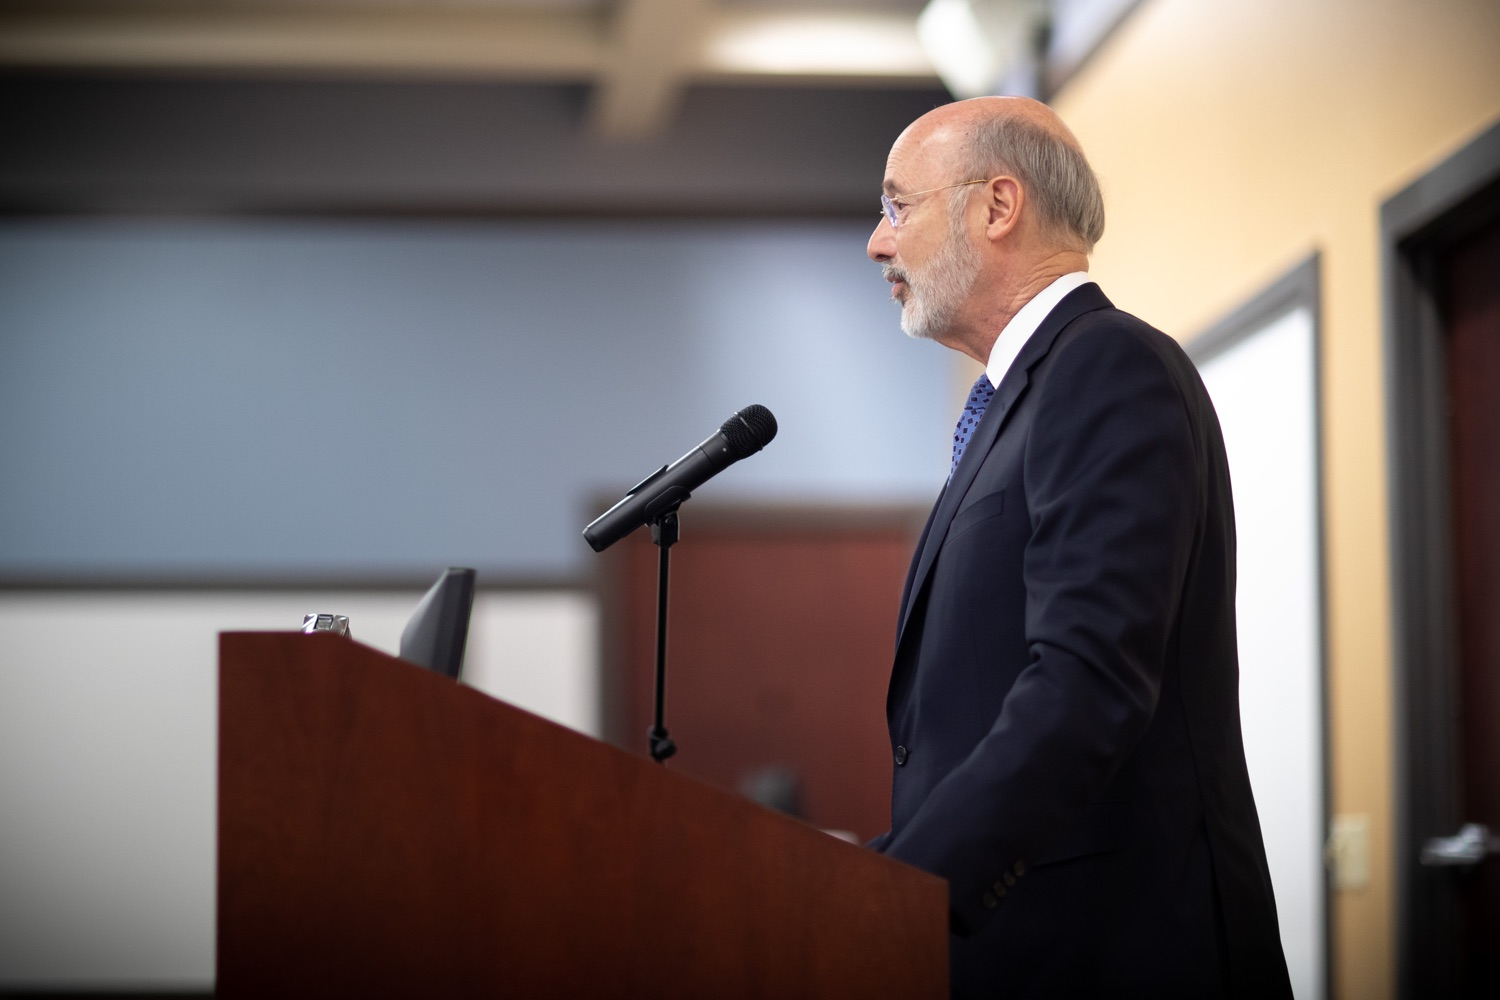 "<a href=""http://filesource.abacast.com/commonwealthofpa/photo/17598_gov_charter_schools_dz_011.jpg"" target=""_blank"">⇣ Download Photo<br></a>Pennsylvania Governor Tom Wolf speaks about charter school reform at a meeting of the Pennsylvania Association of School Administrators.  Governor Tom Wolfs commonsense plan to improve the educational quality of charter schools and control rising costs will save nearly $280 million a year, the governor told the Pennsylvania Association of School Administrators today. The governor has a three-part plan to fix Pennsylvanias charter school law which is regarded as one of the worst in the nation.  - Harrisburg, PA. Friday, November 15, 2019."